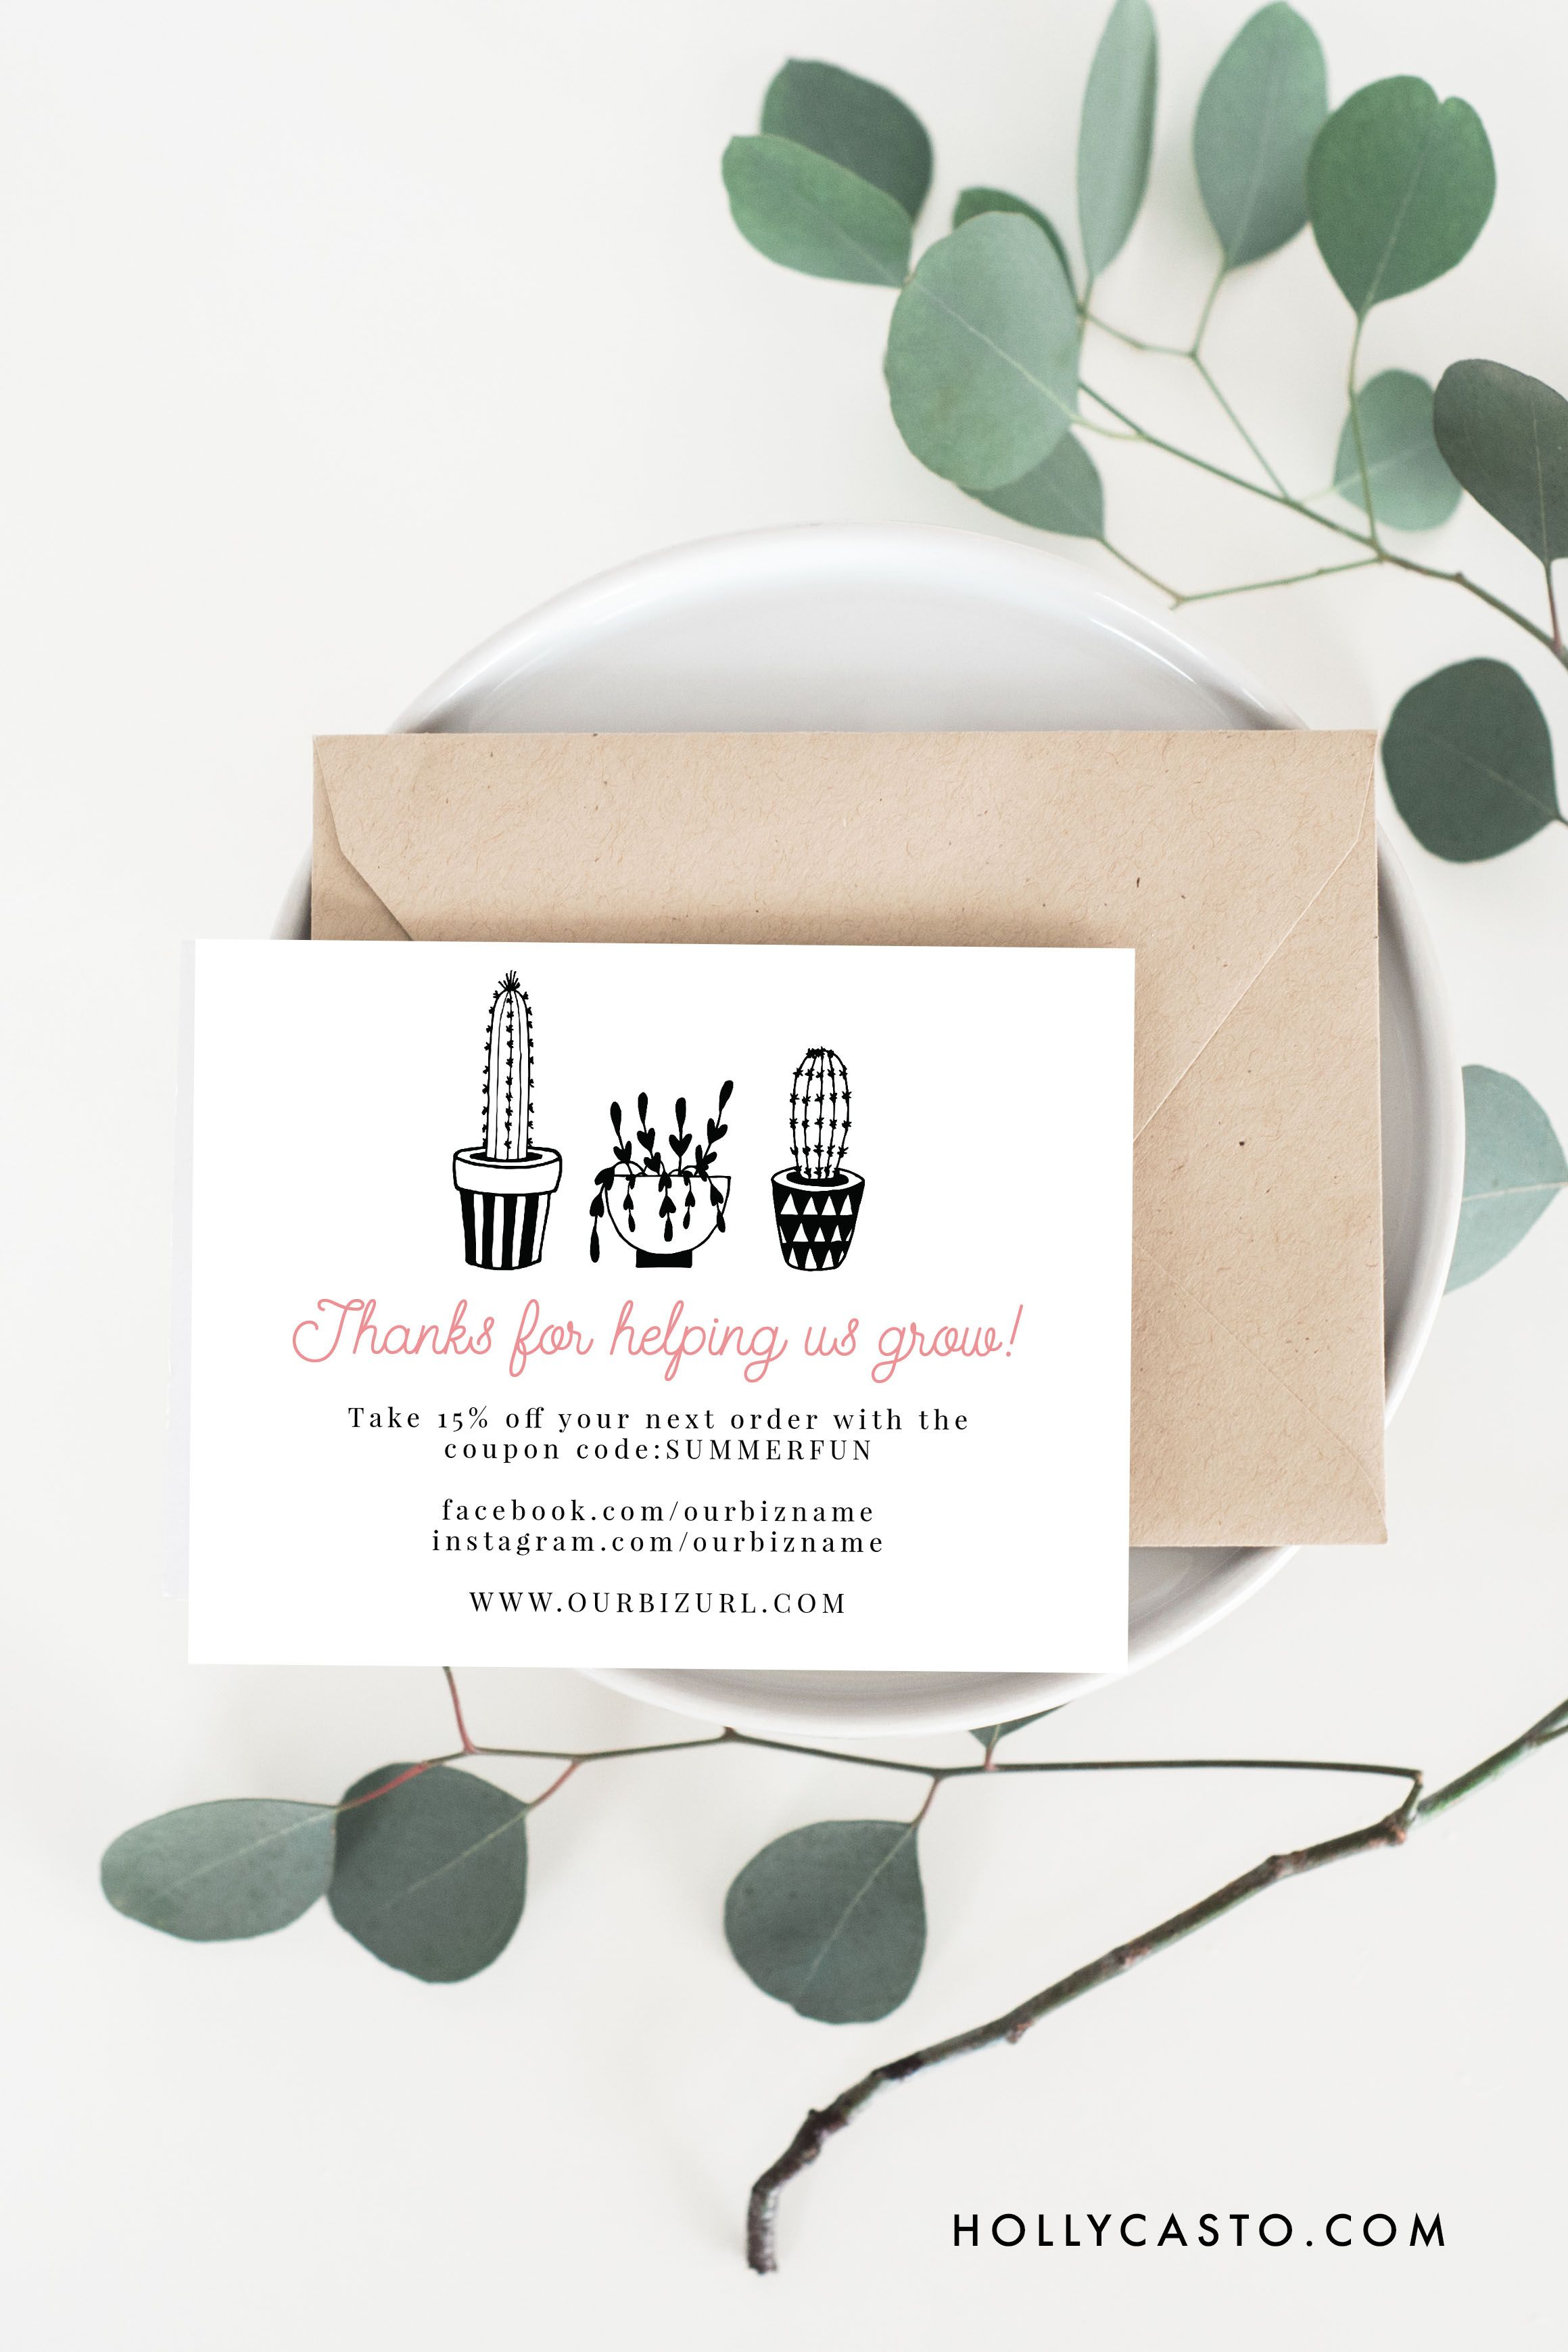 Printable Thank You Cards Cactus Business Pinterest Thank